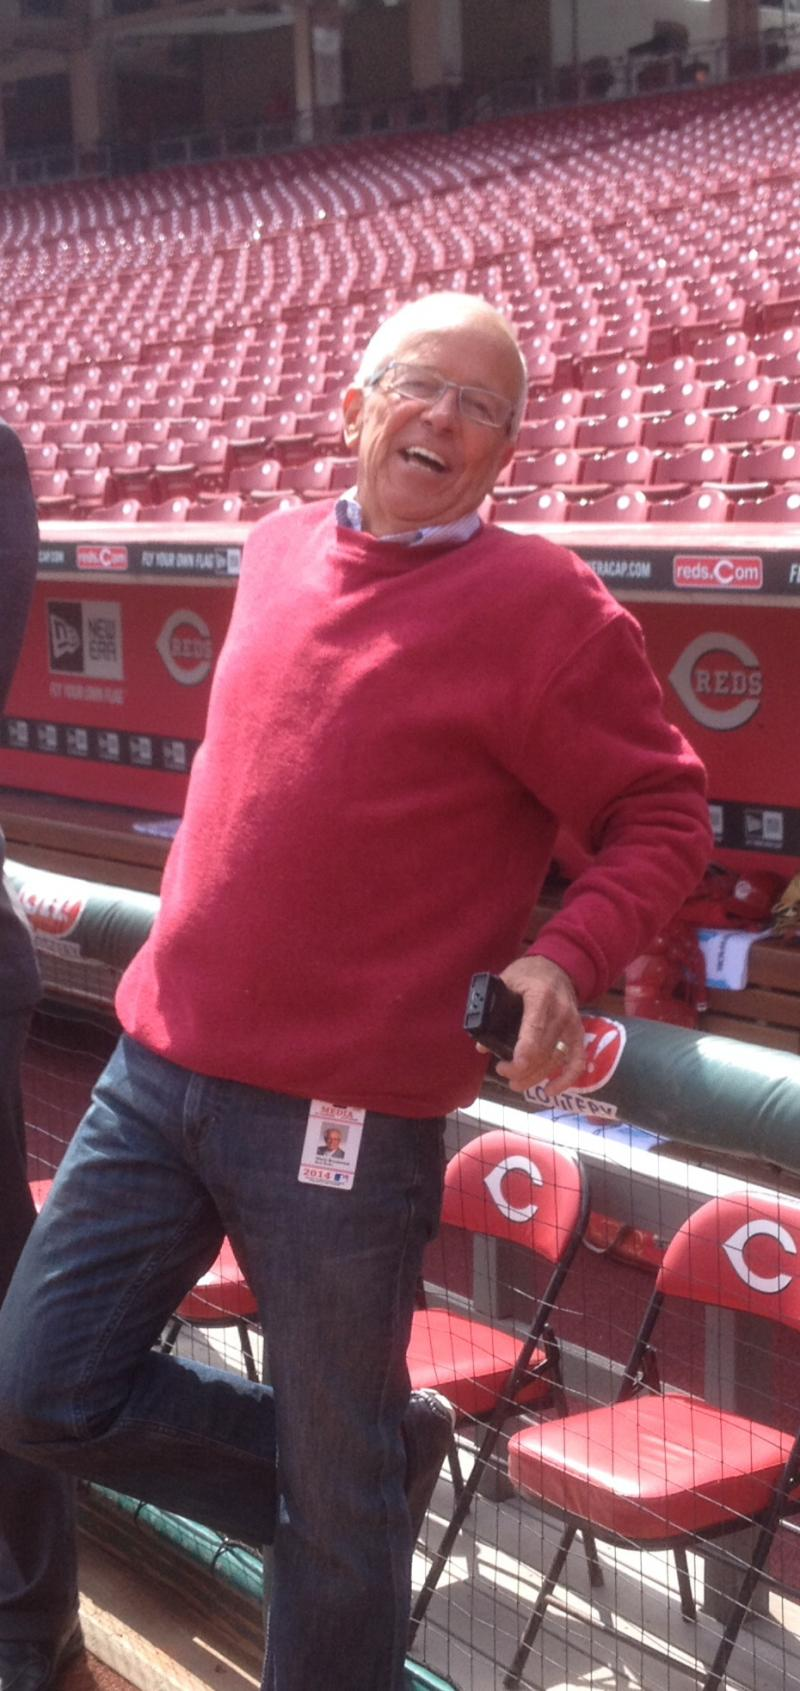 Reds announcer Marty Brennaman who is entering his 41st season calling games for the Reds spends a little time on the field at GABP before the game